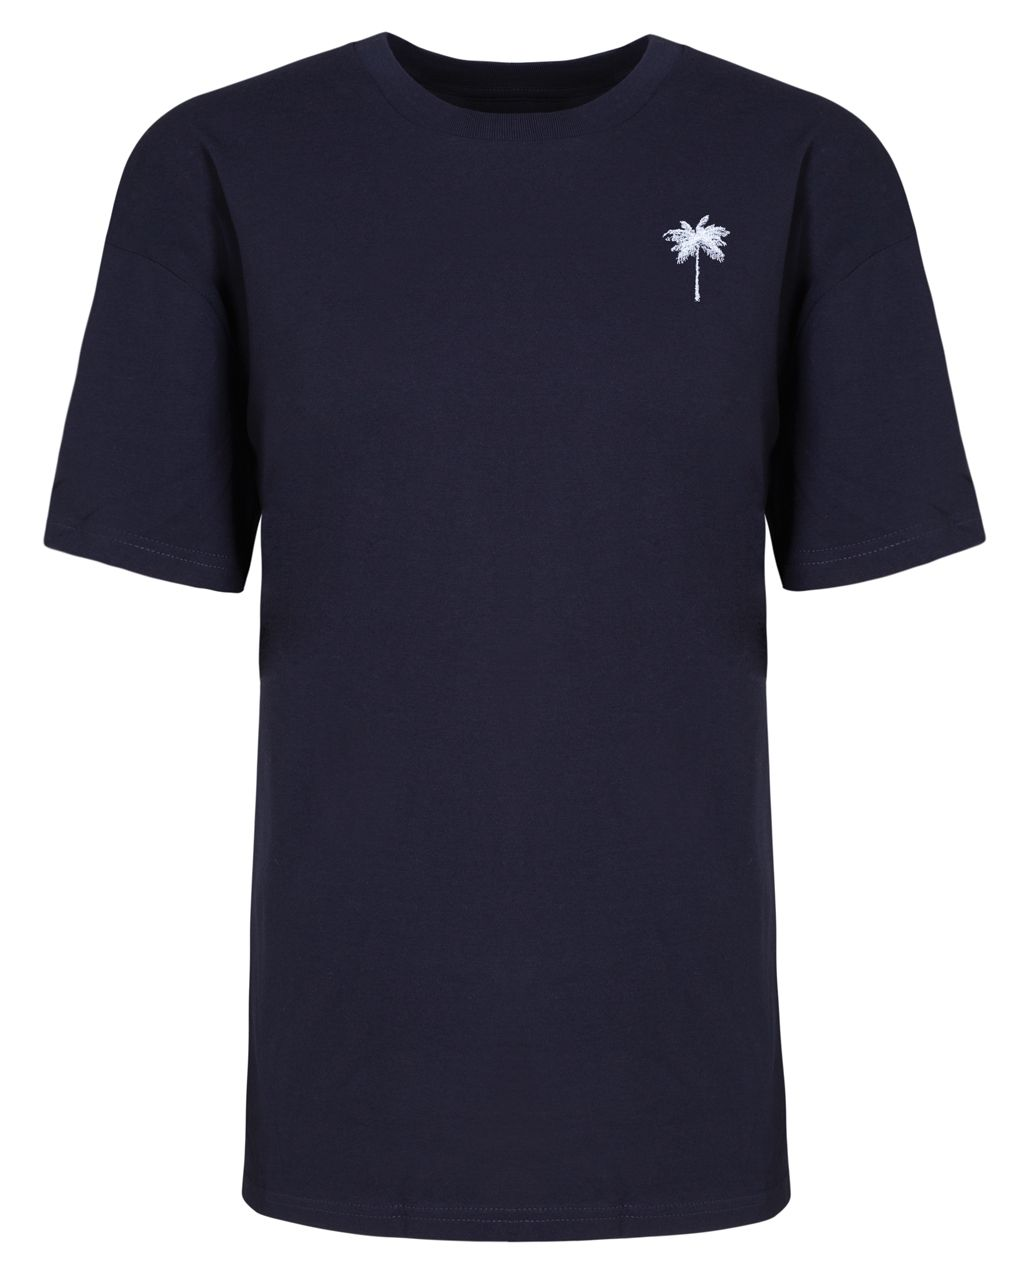 Palm Tree Embroidered T-Shirt Navy